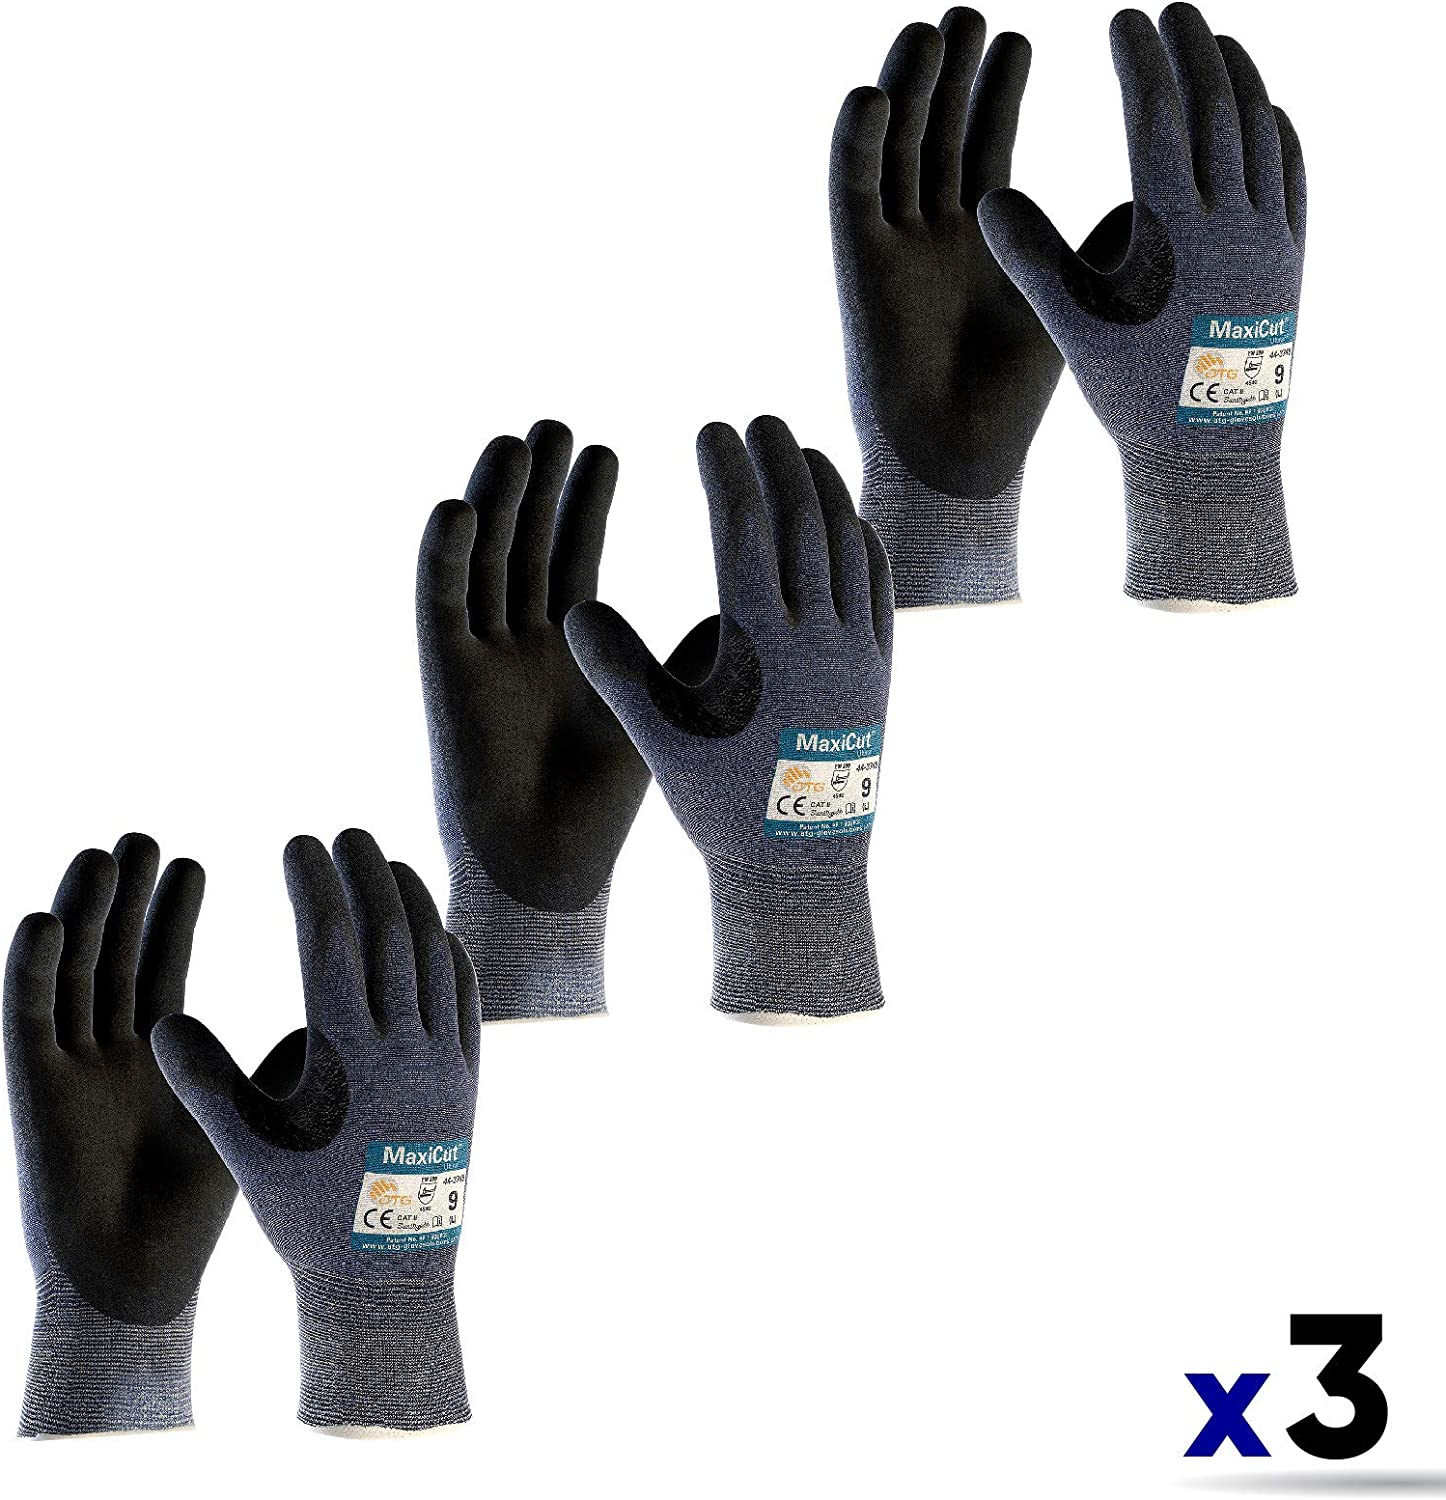 ATG MAXIFLEX CUT RESISTANT GLOVES 1Pair Silicone Free GREEN Size 7,8,9,10 Or 11